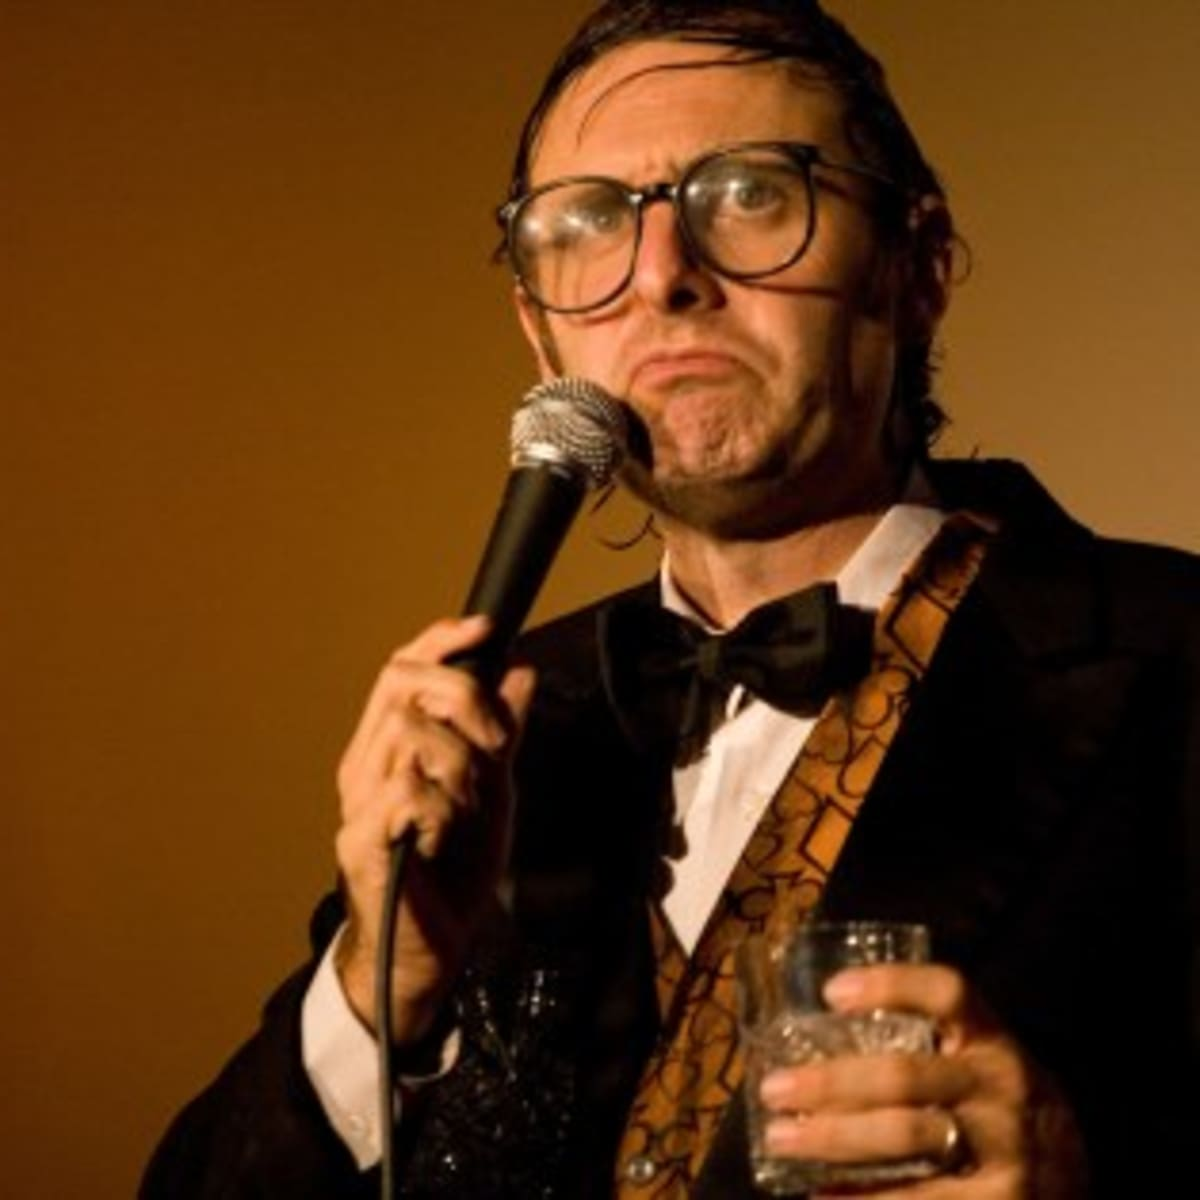 comedian Neil Hamburger performing stand up